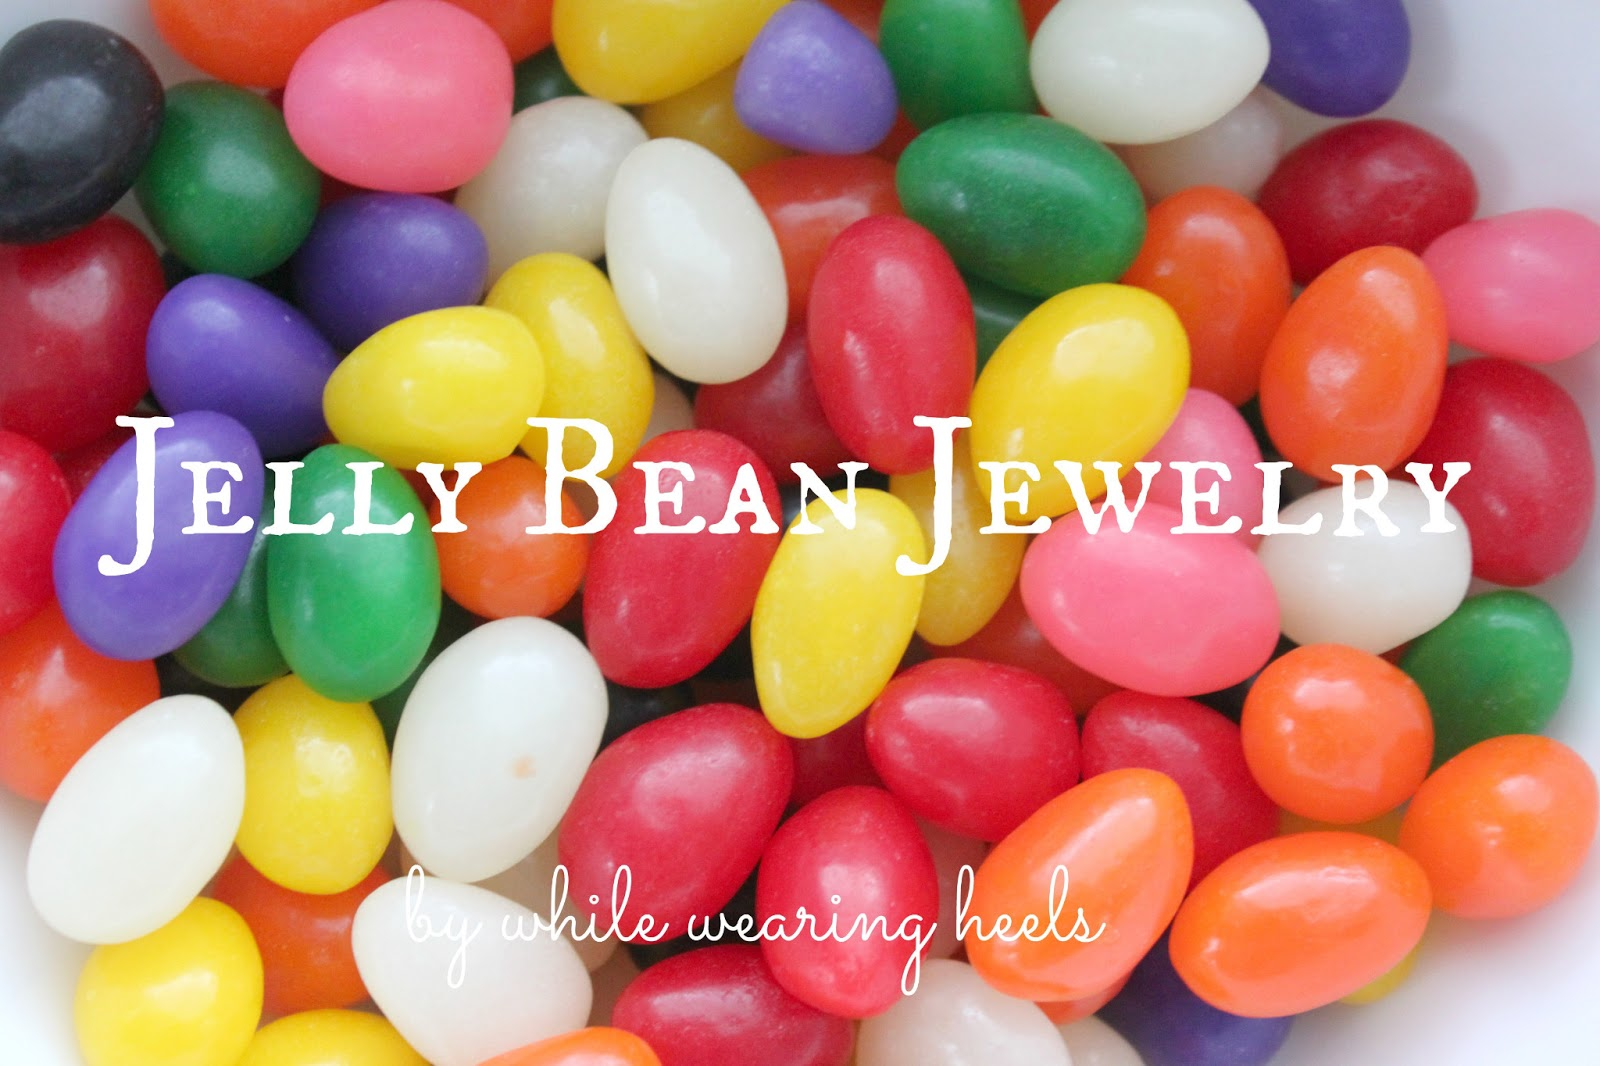 how to make jelly beans and jawbreakers